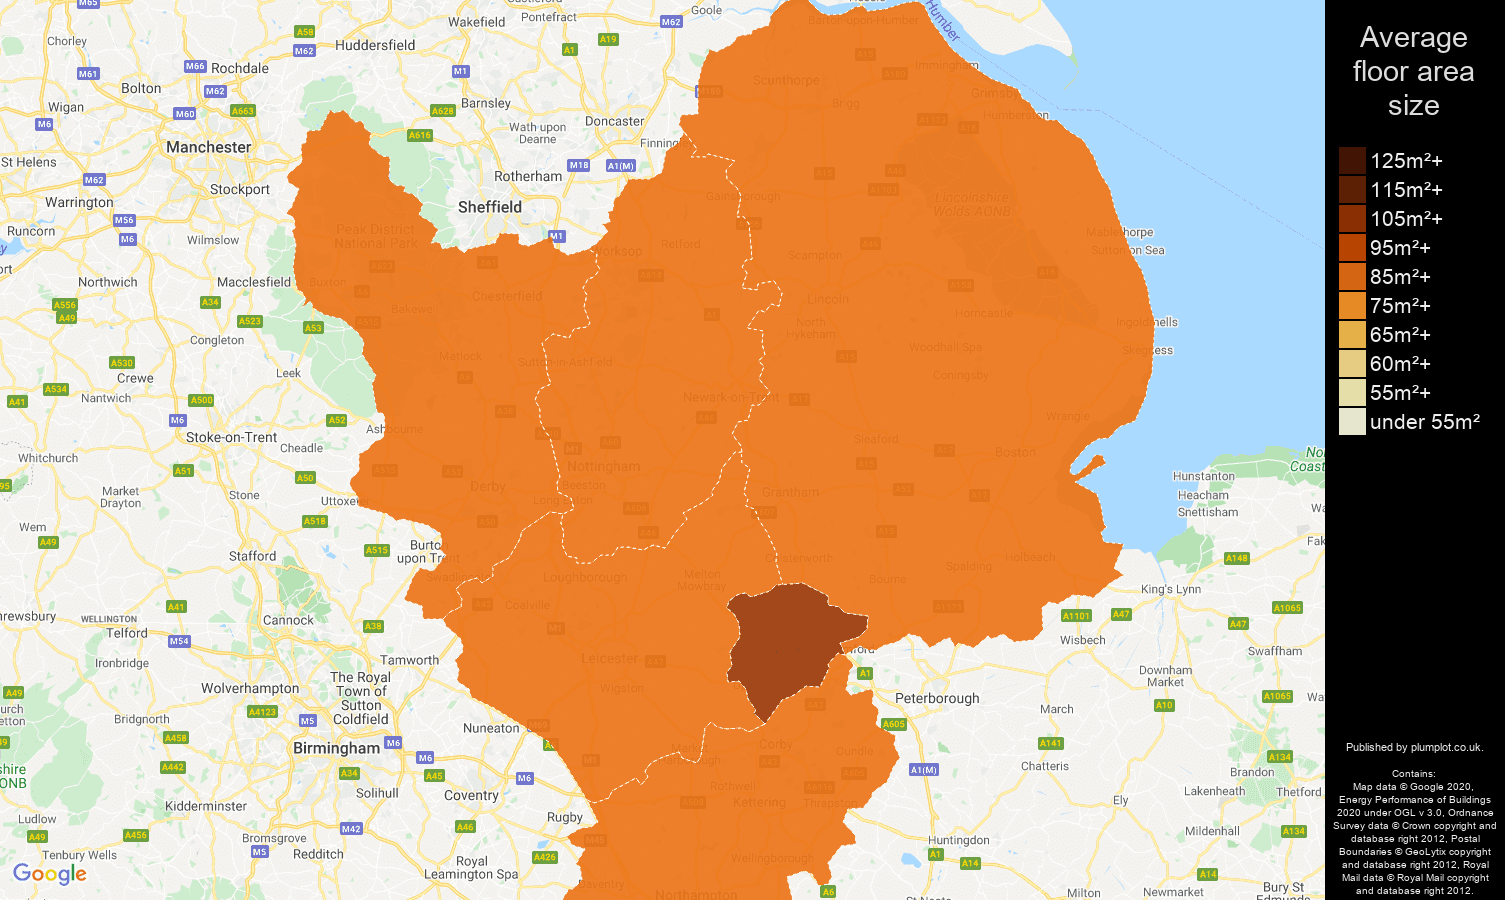 East Midlands map of average floor area size of properties